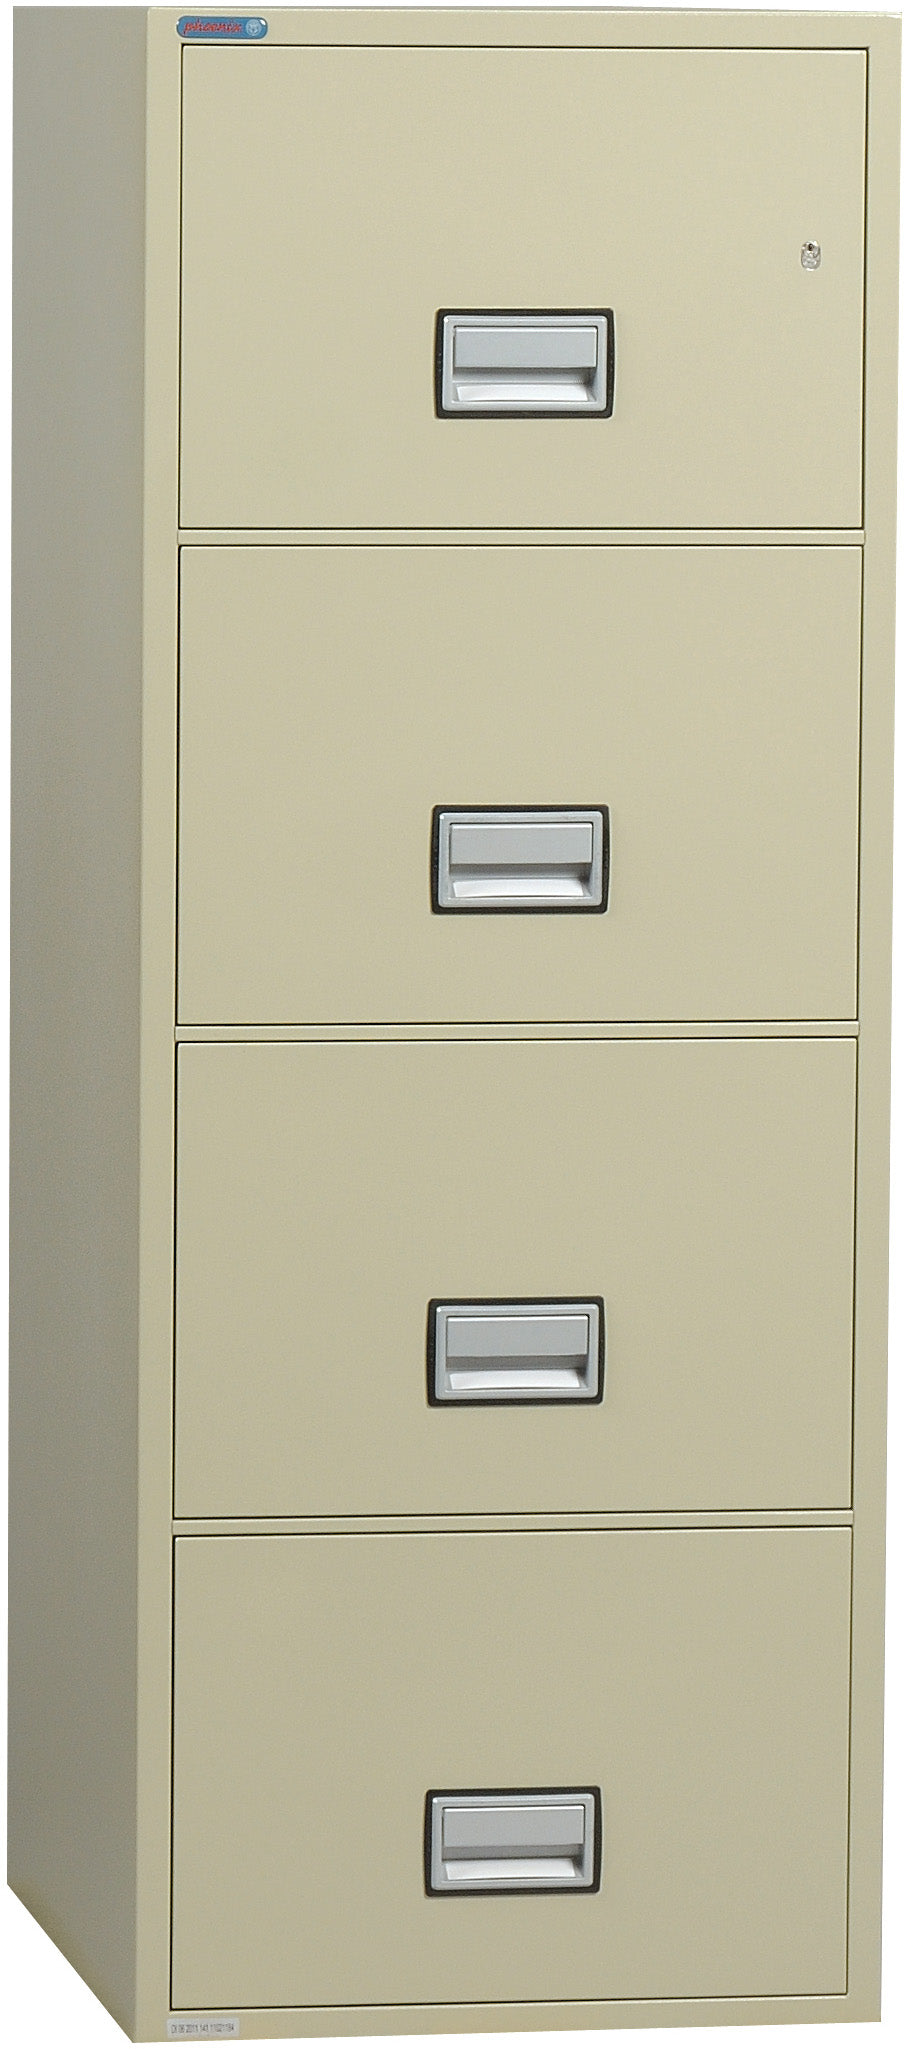 Vertical 25 inch 4-Drawer Legal Fire & Water Resistant File Cabinet